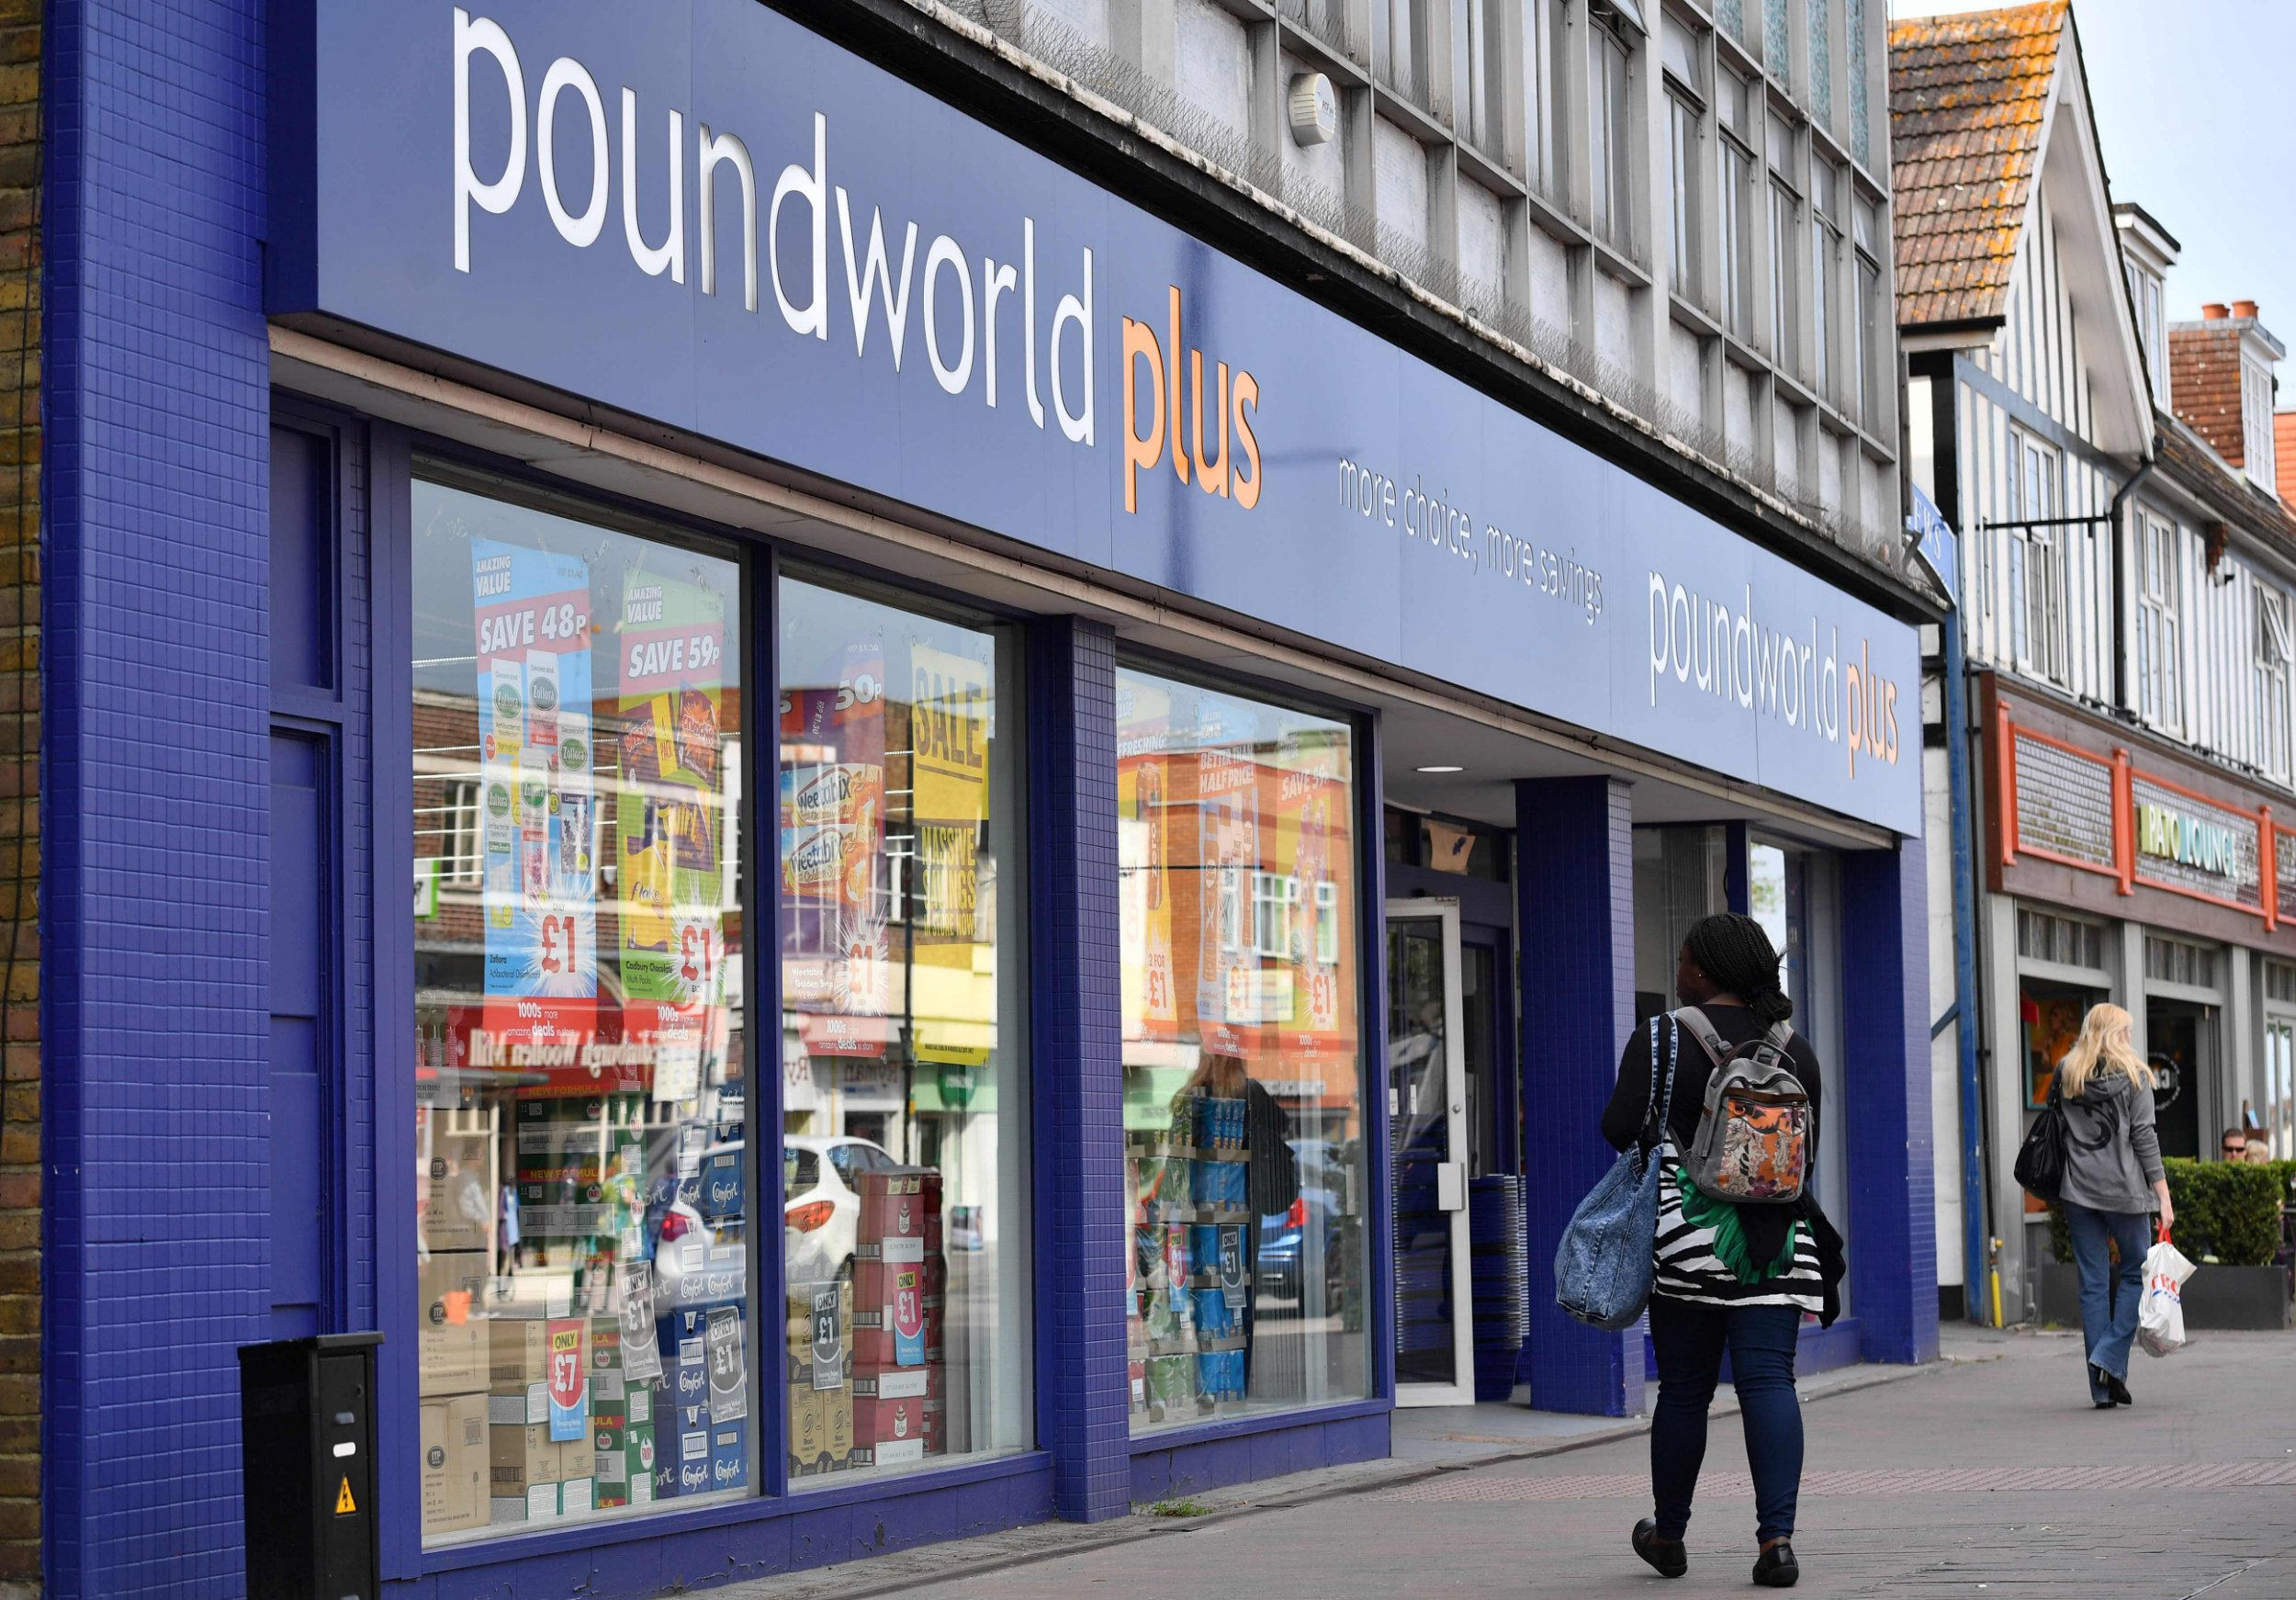 Pedestrians walk past the entrance to a Poundworld Plus discount store in Orpington, south-east London, on June 7, 2018. Budget chain Poundworld is seeking a rescue plan to safeguard more than 5,000 jobs, according to a source. / AFP PHOTO / Ben STANSALLBEN STANSALL/AFP/Getty Images